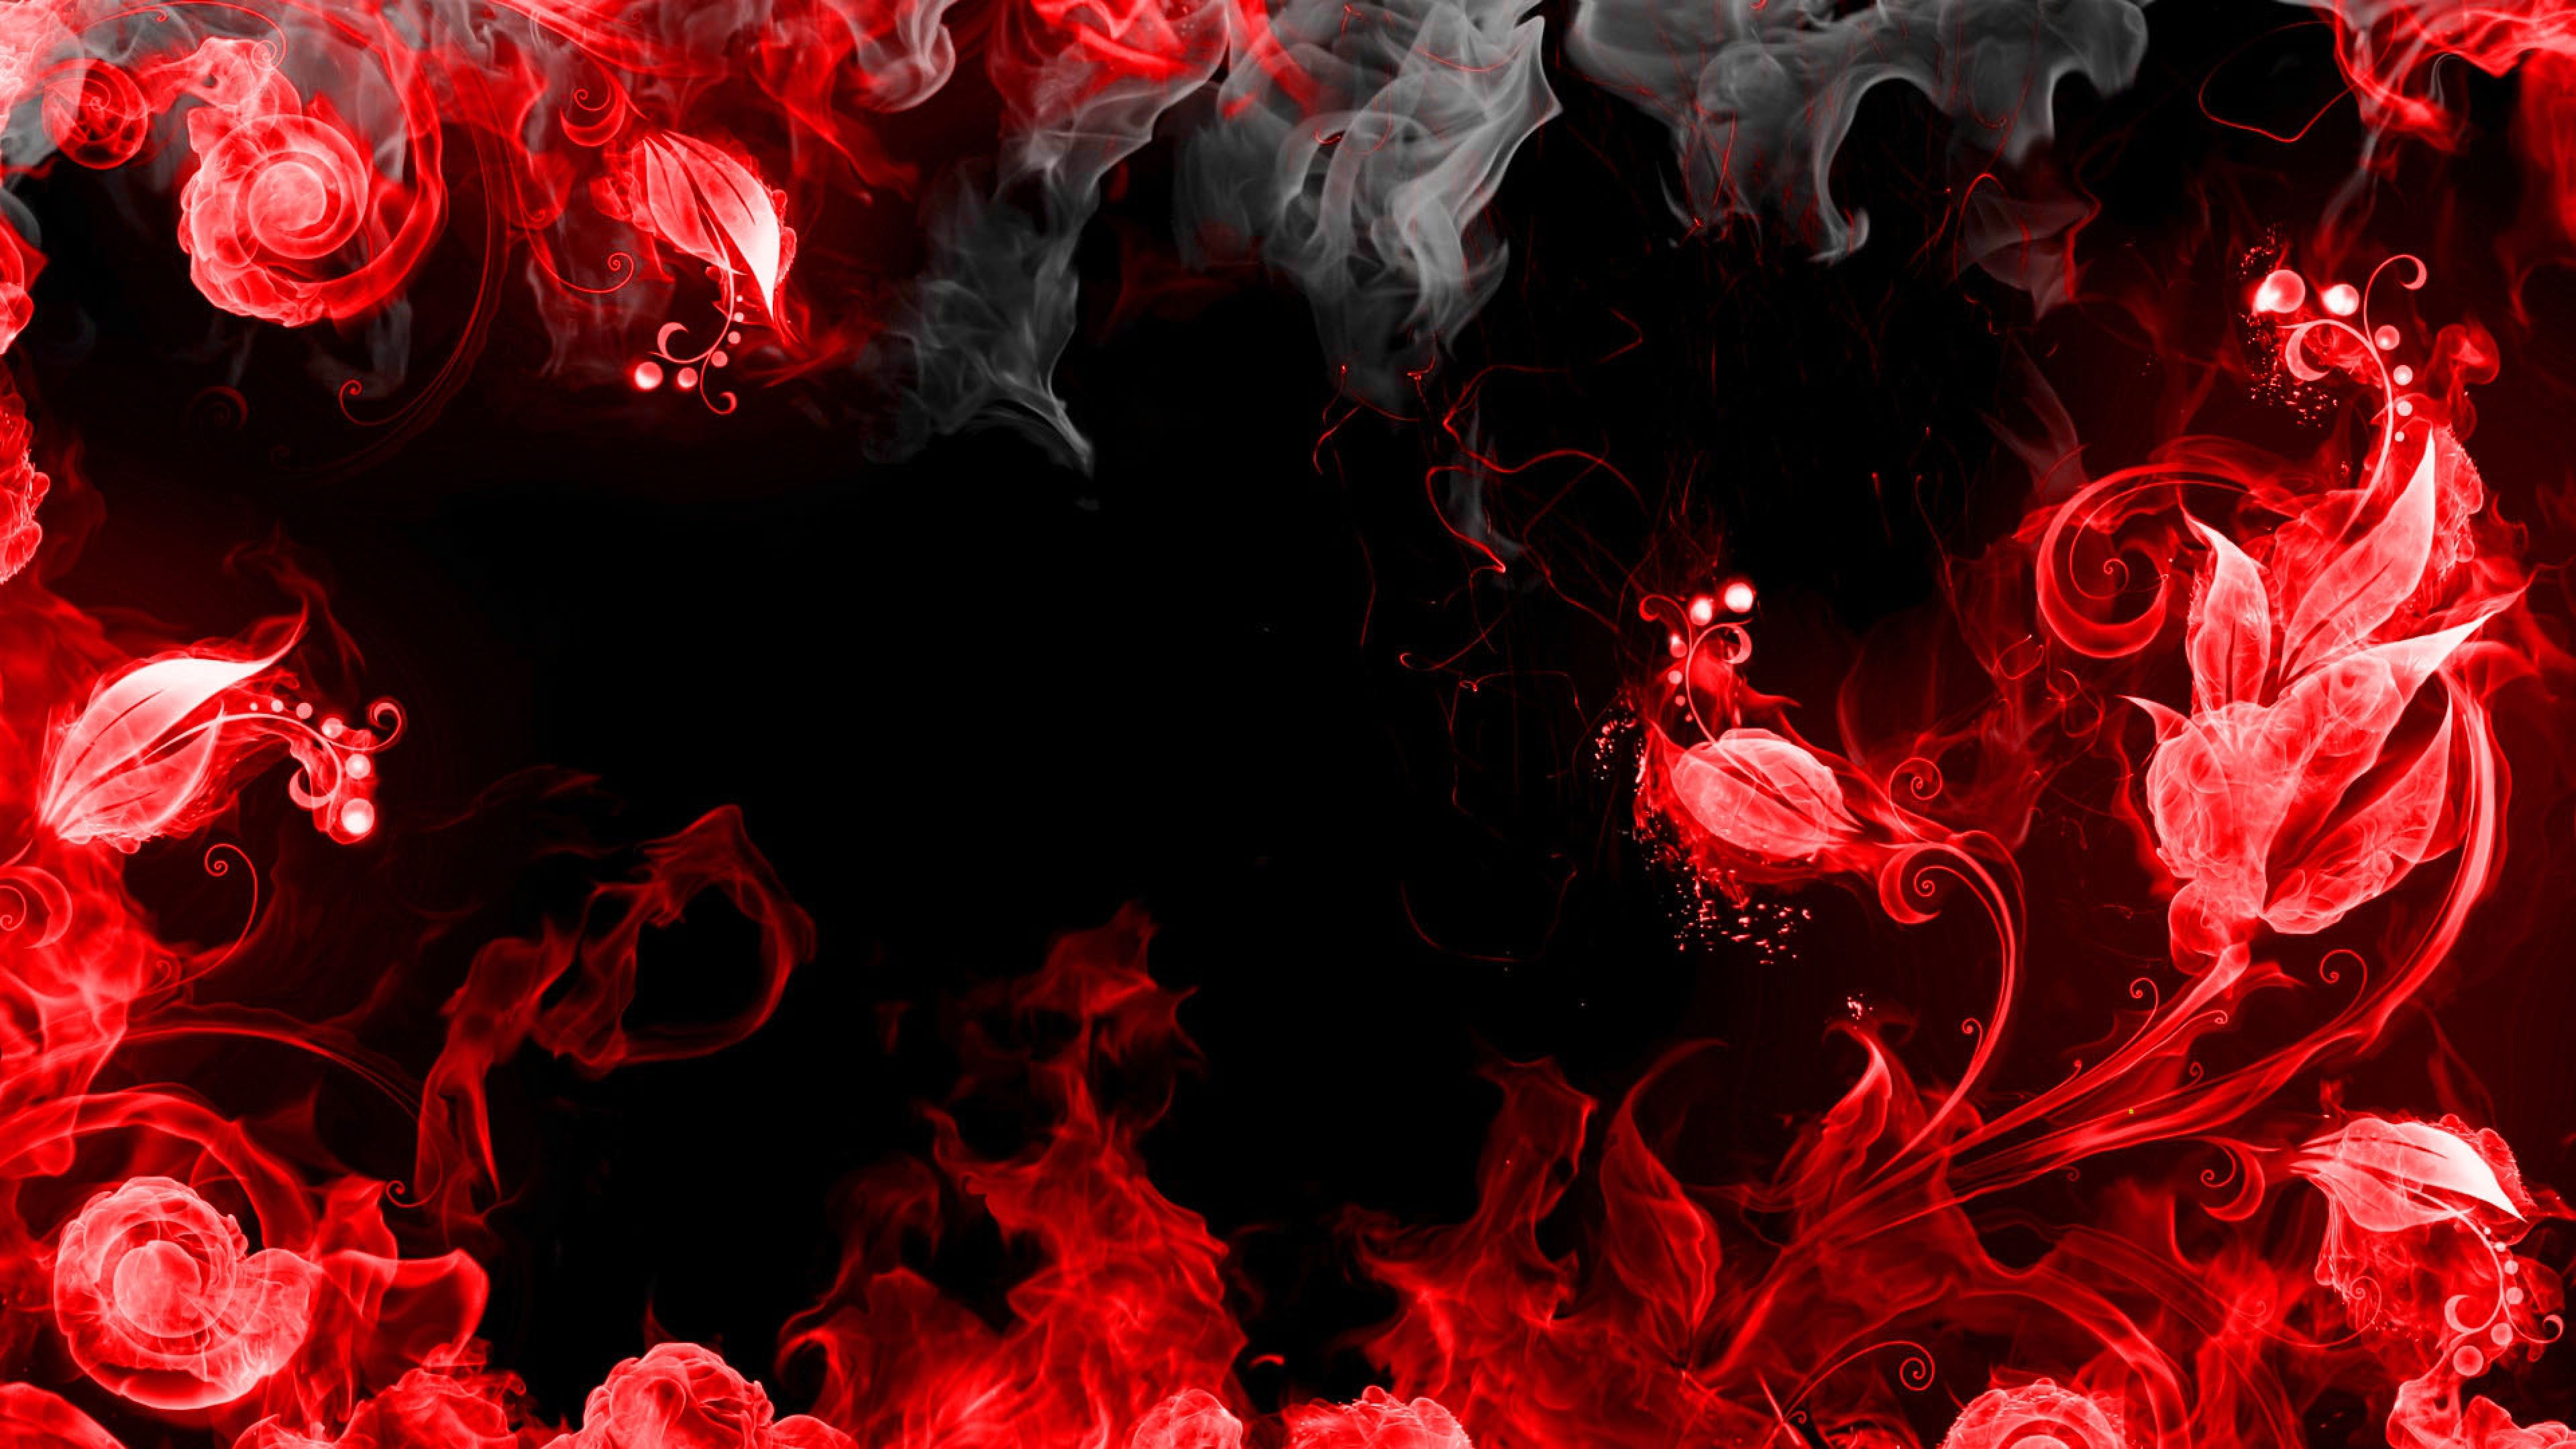 Download 600 Wallpaper Black Red 4k Paling Keren